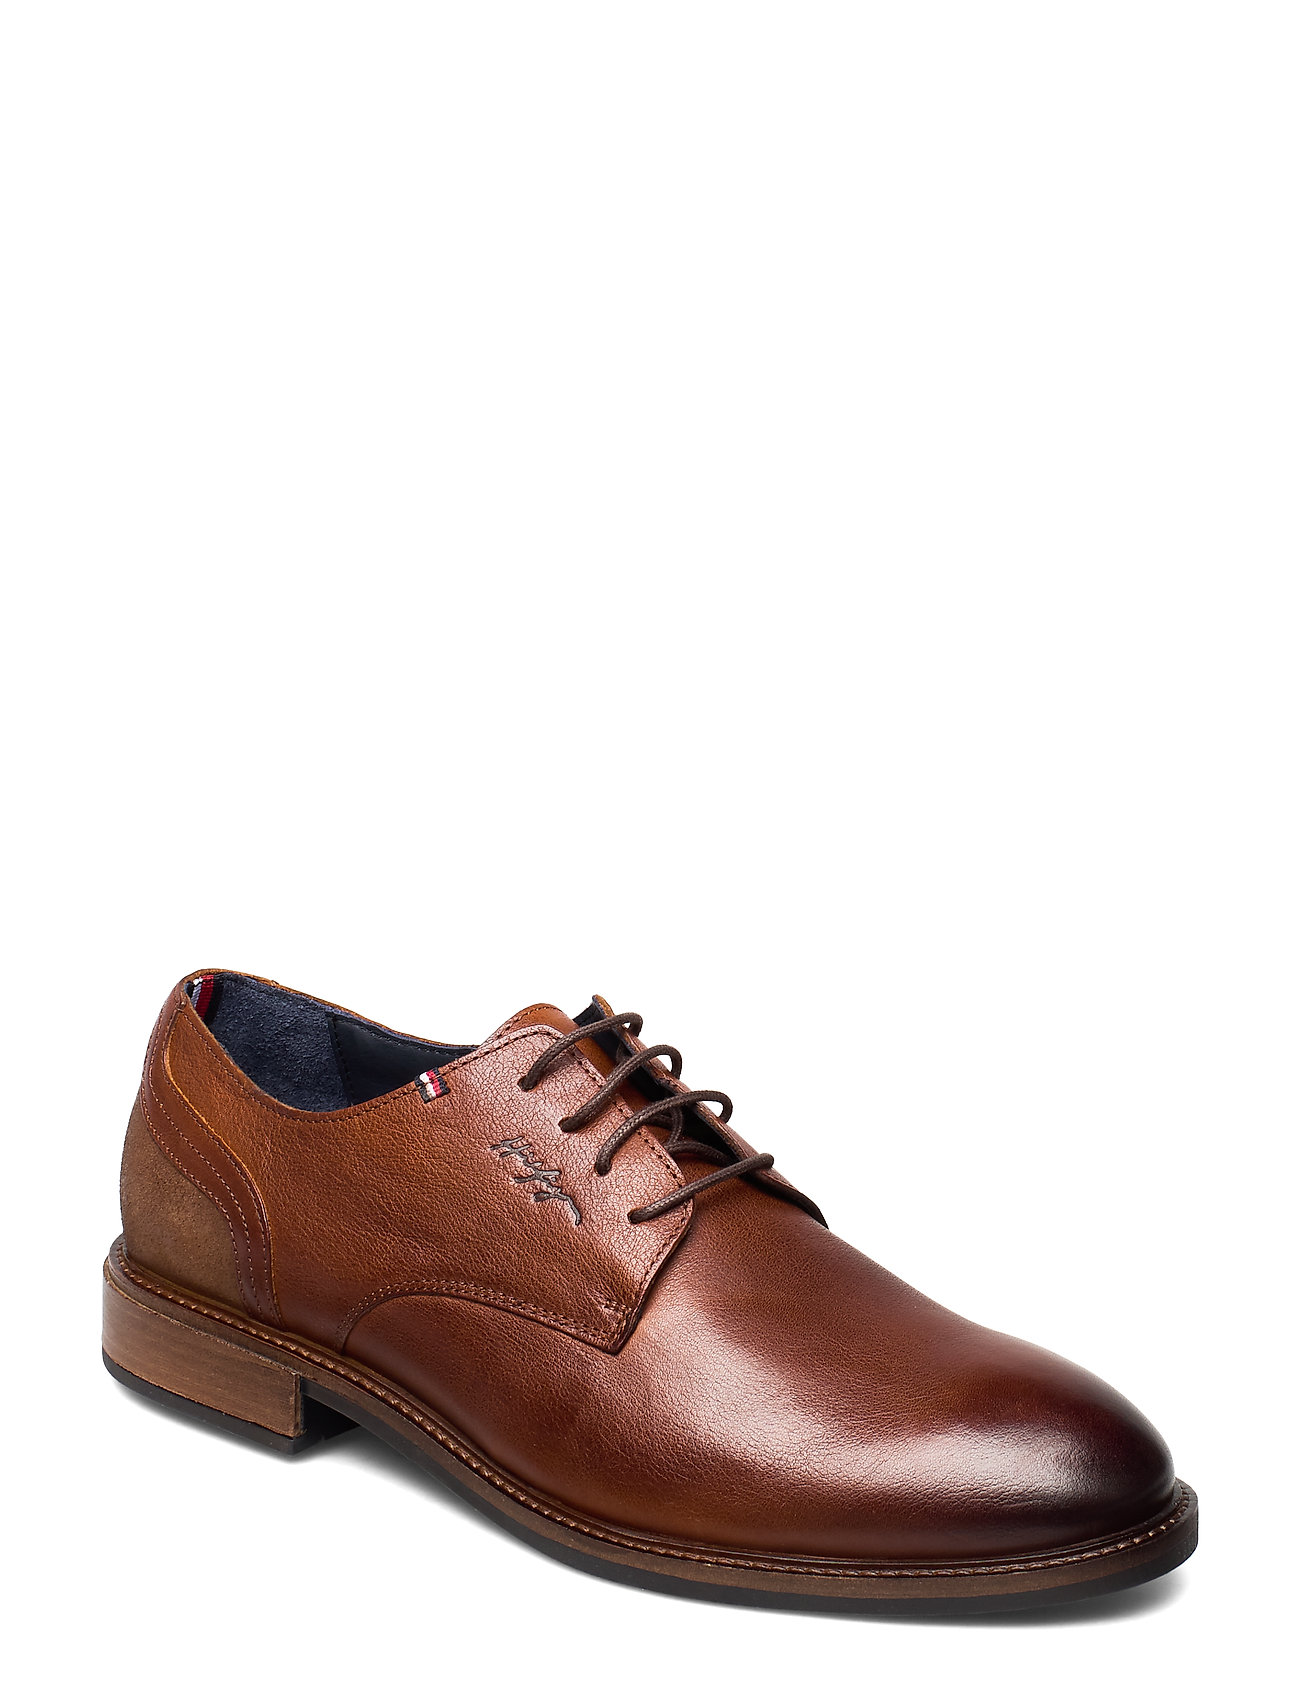 Image of Elevated Leather Mix Shoe Shoes Business Laced Shoes Brun Tommy Hilfiger (3248024033)